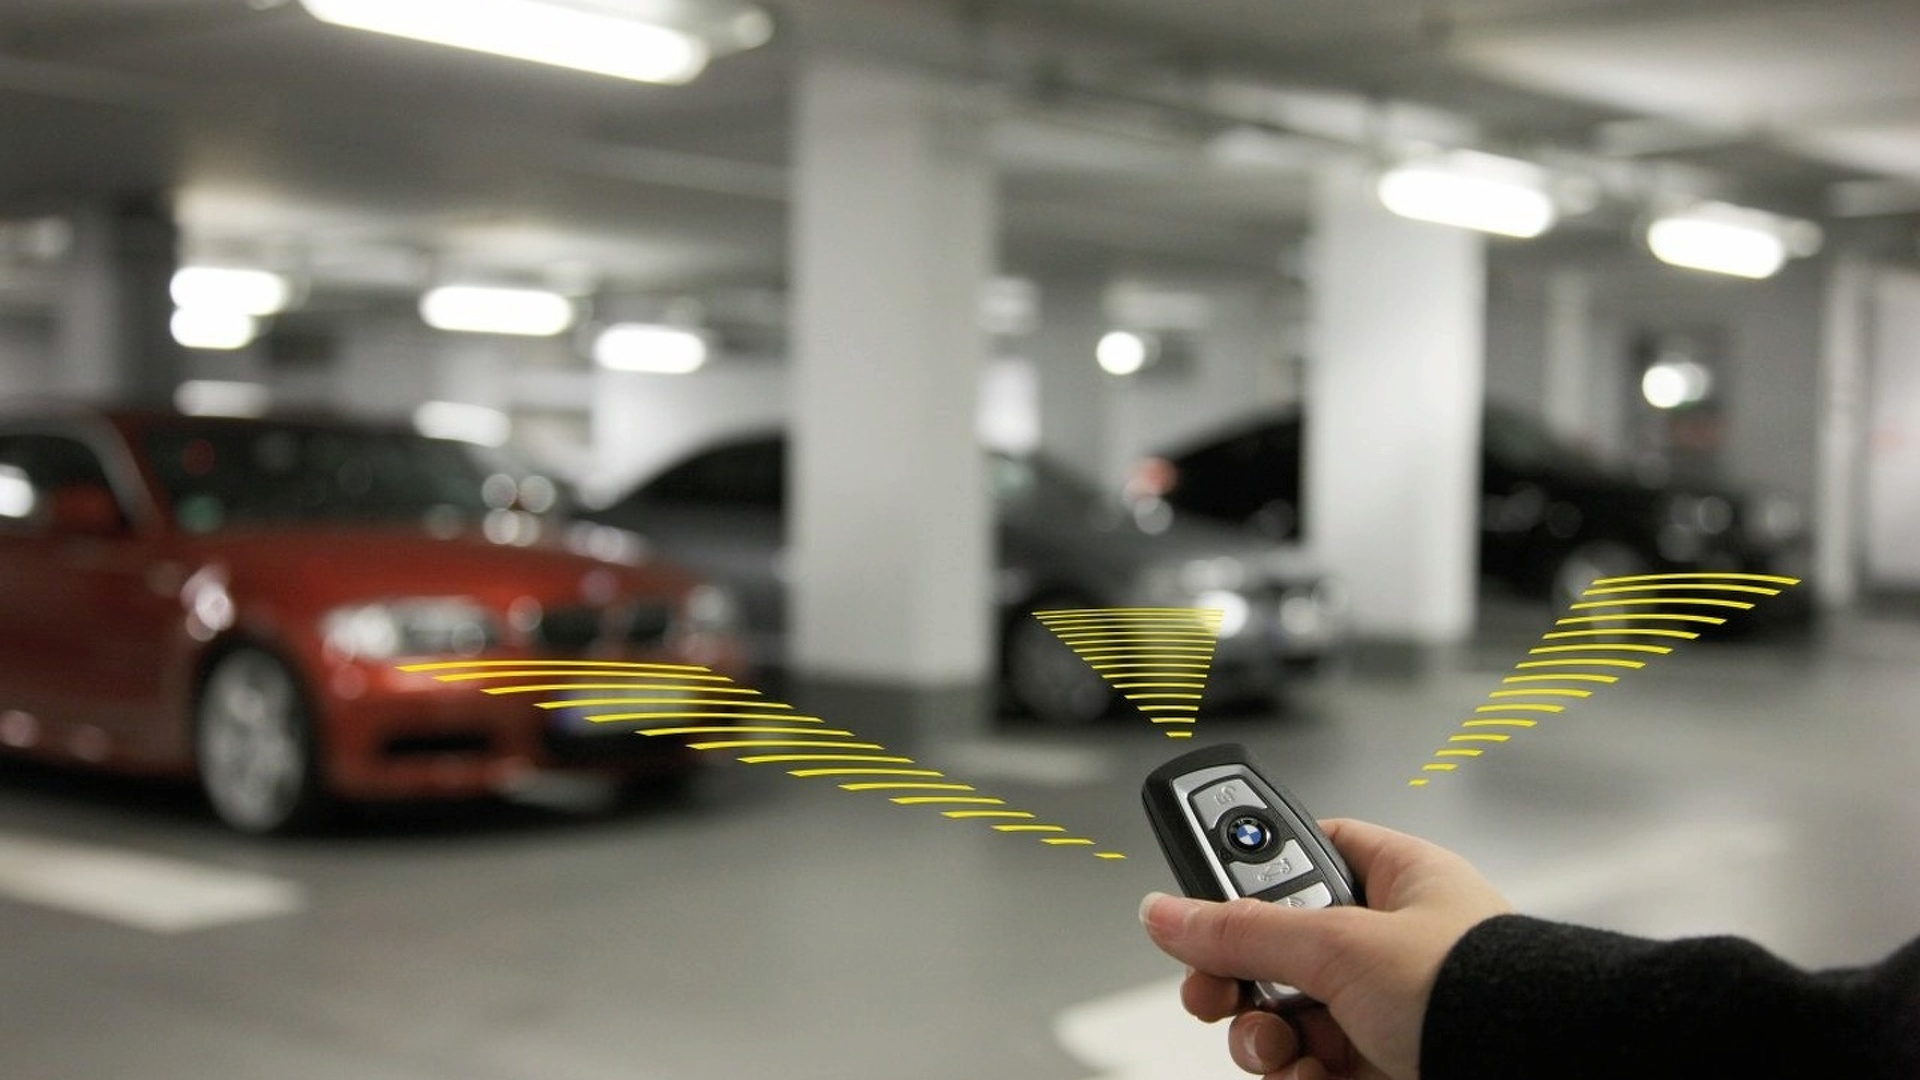 Hacker Disables 100+ Cars Remotely